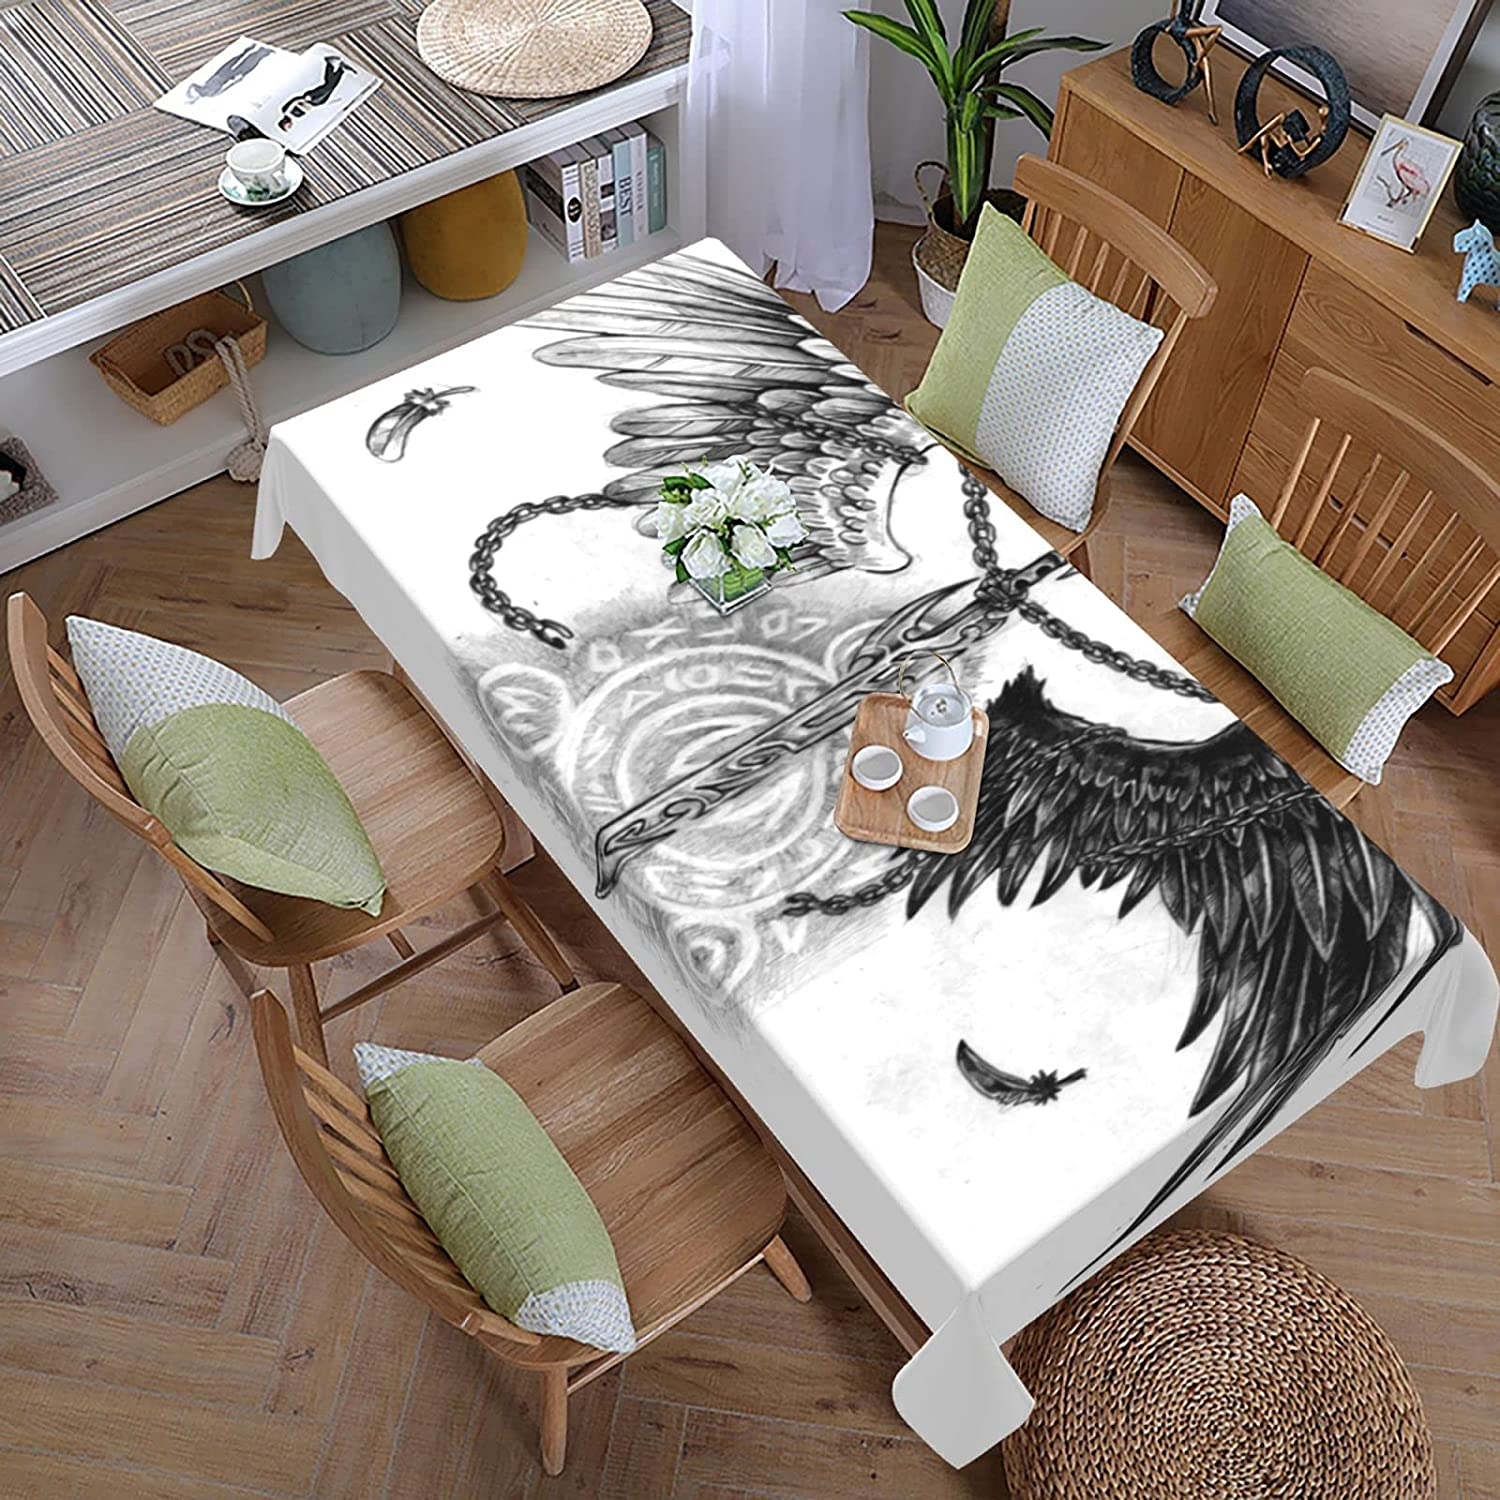 Holy Sword Wings Large-scale sale Free shipping anywhere in the nation Tablecloth-108x60 in Cloth Polyester Table Wash